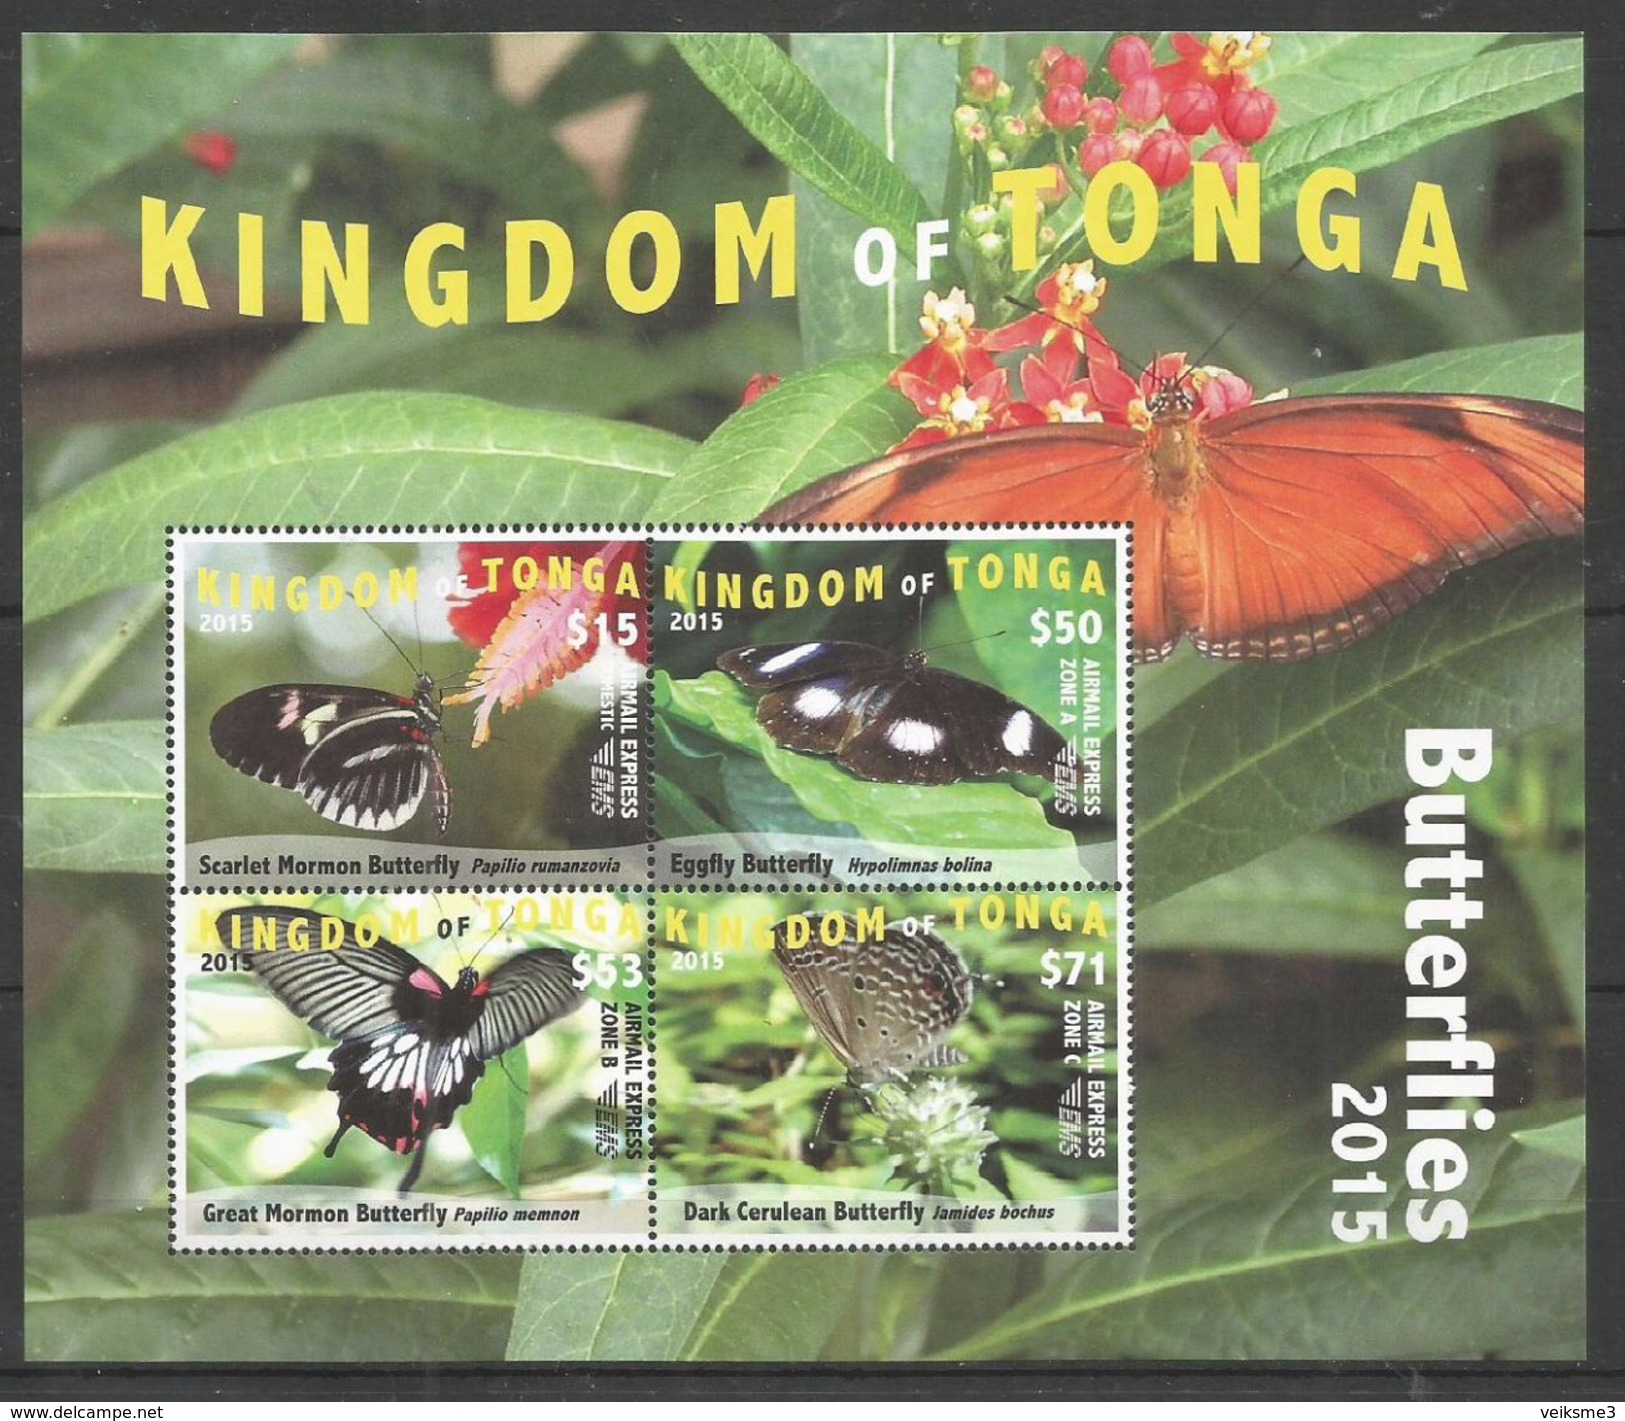 KINGDOM OF TONGA - MNH - Animals - Insects - Butterflies - 2015 - Papillons